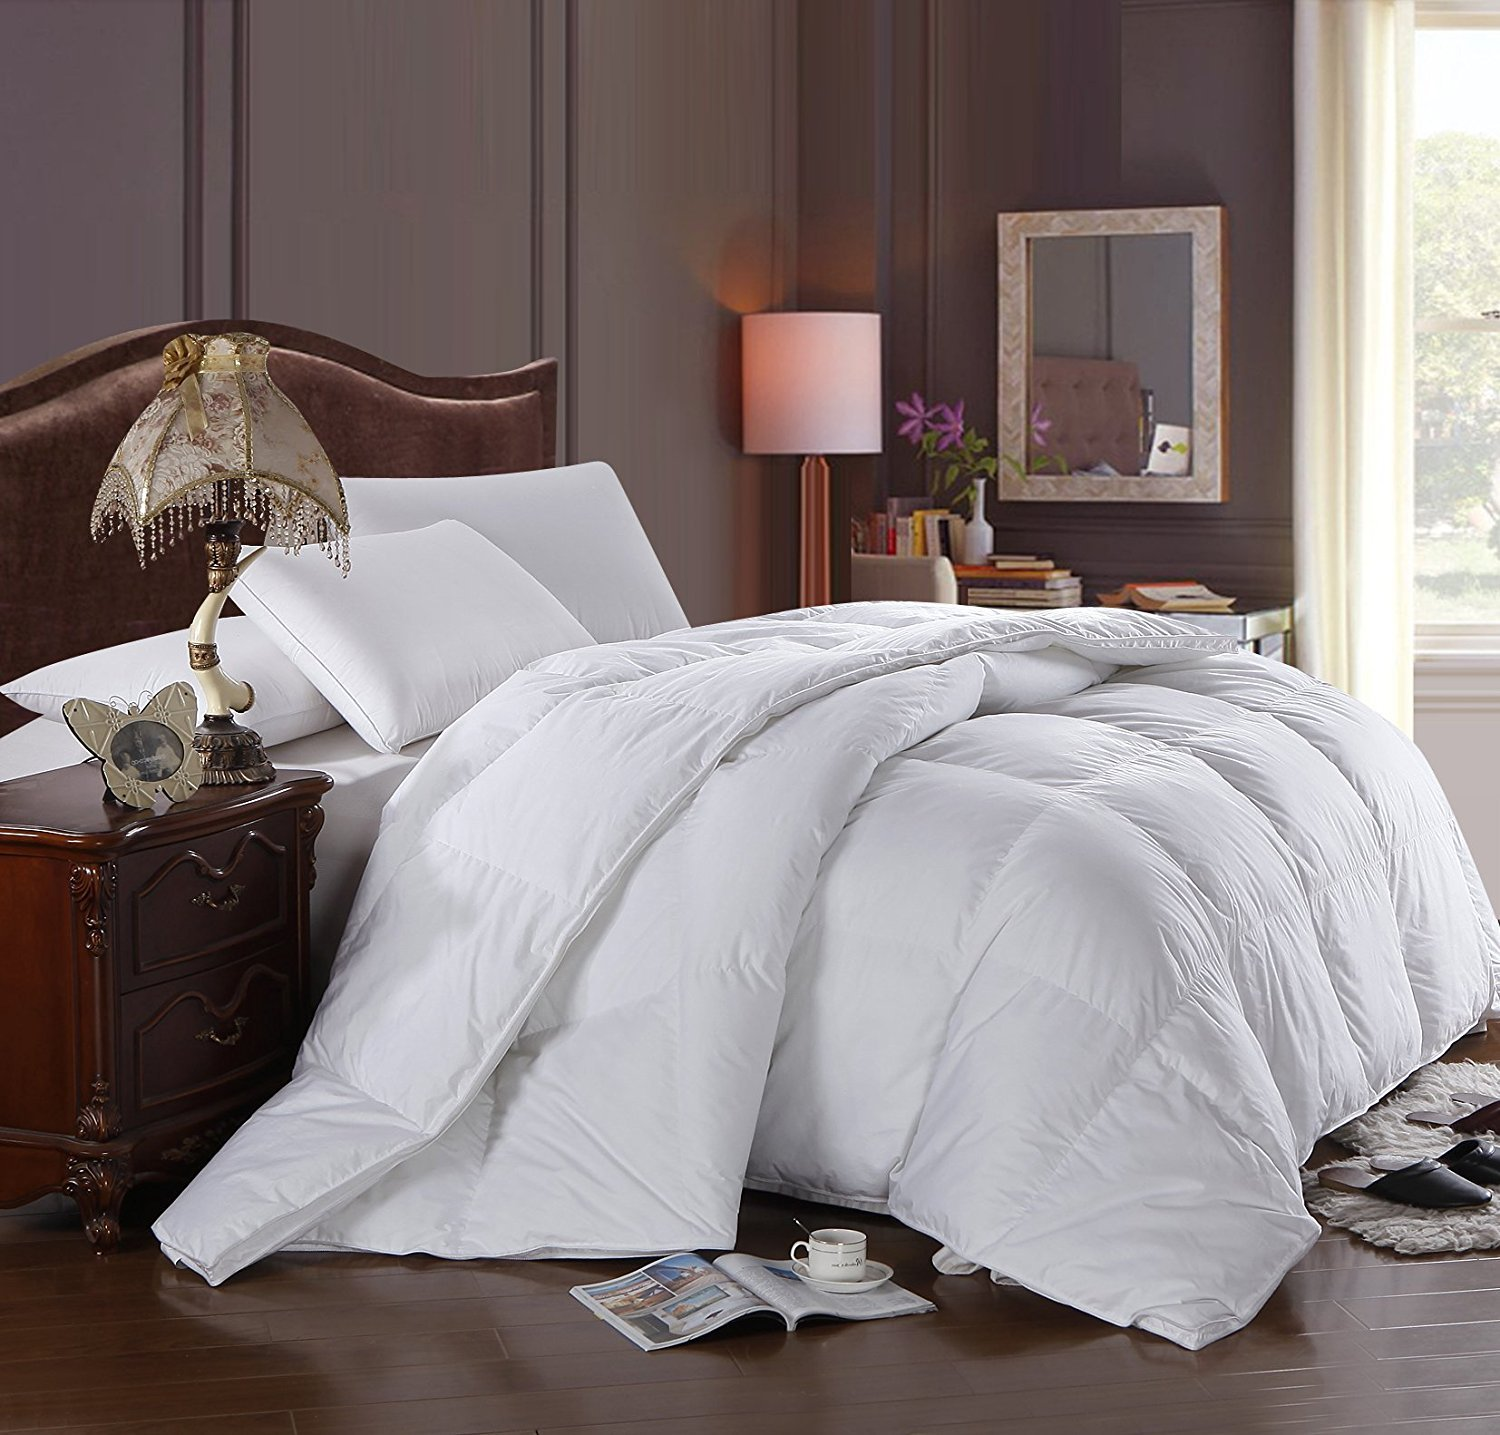 Royal Hotel's - King Size Goose Down Alternative Comforter